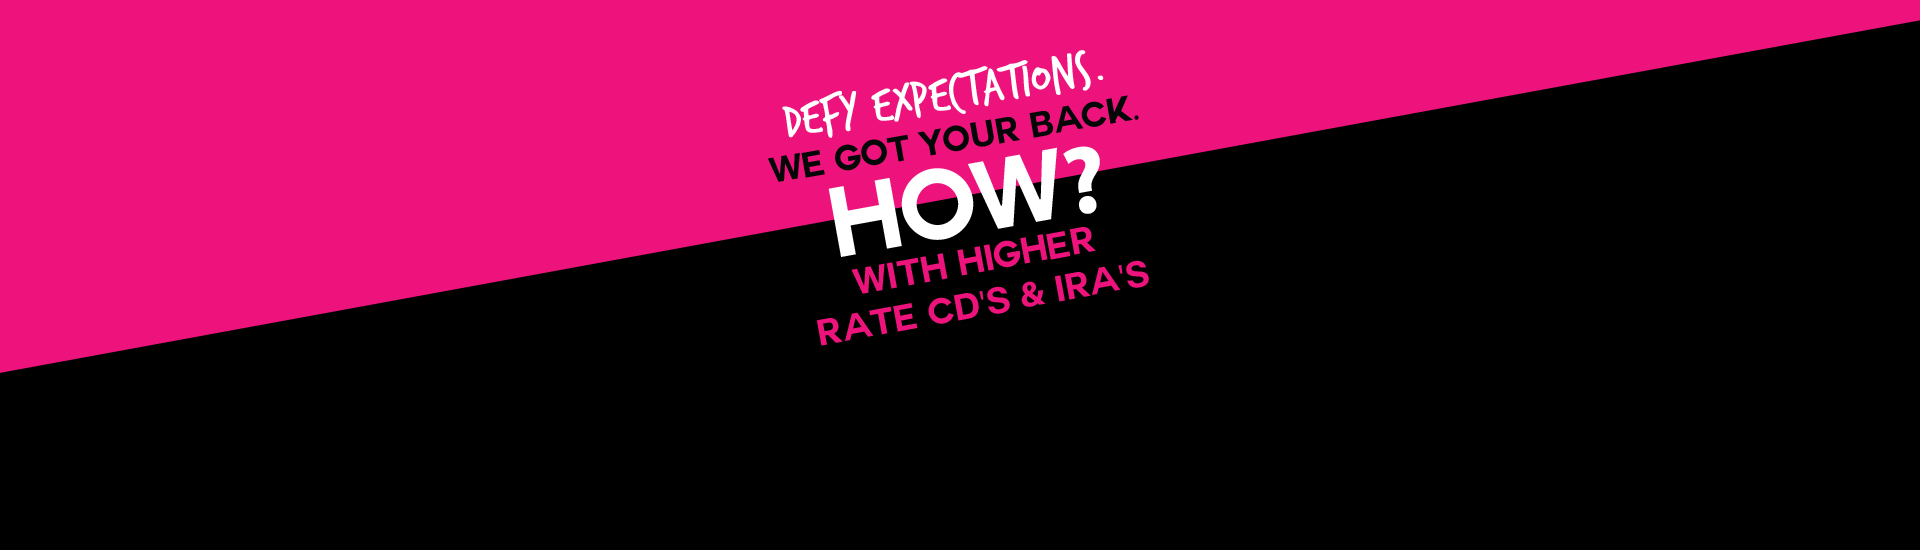 web-banner-defy-expectations-we-got-your-back-CDs-IRAs